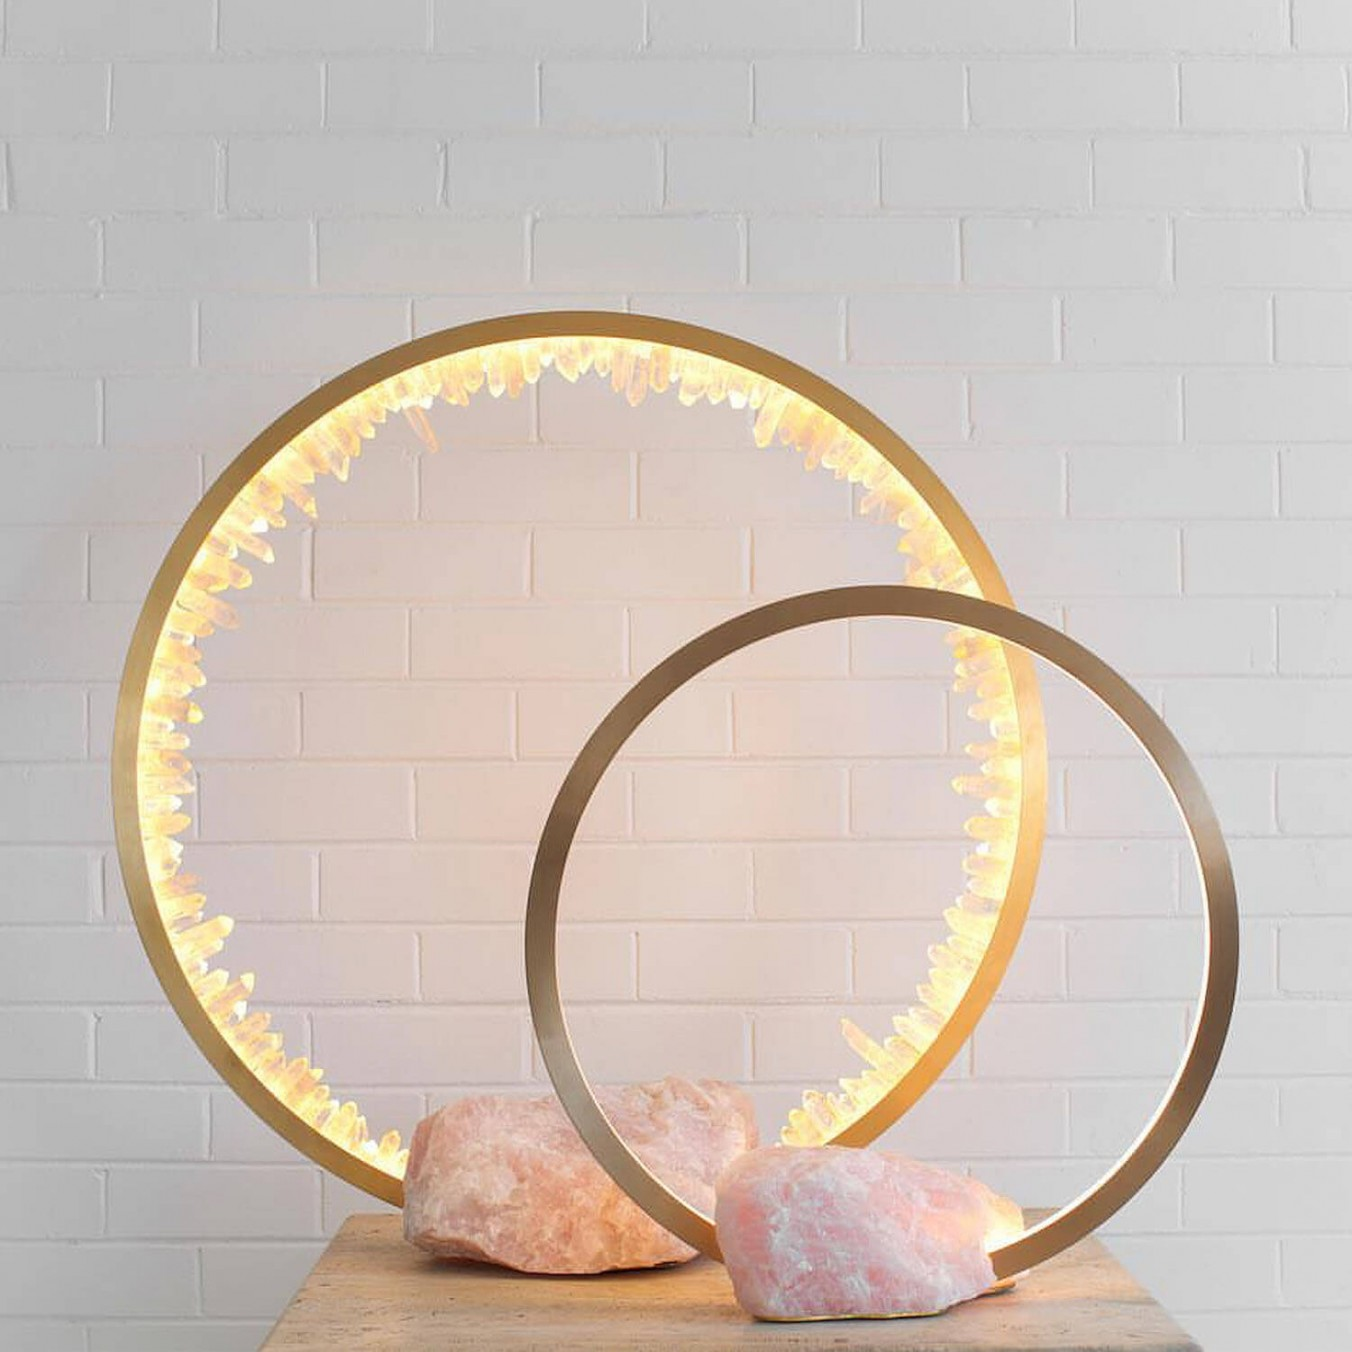 Portal table lamp Rose Quartz